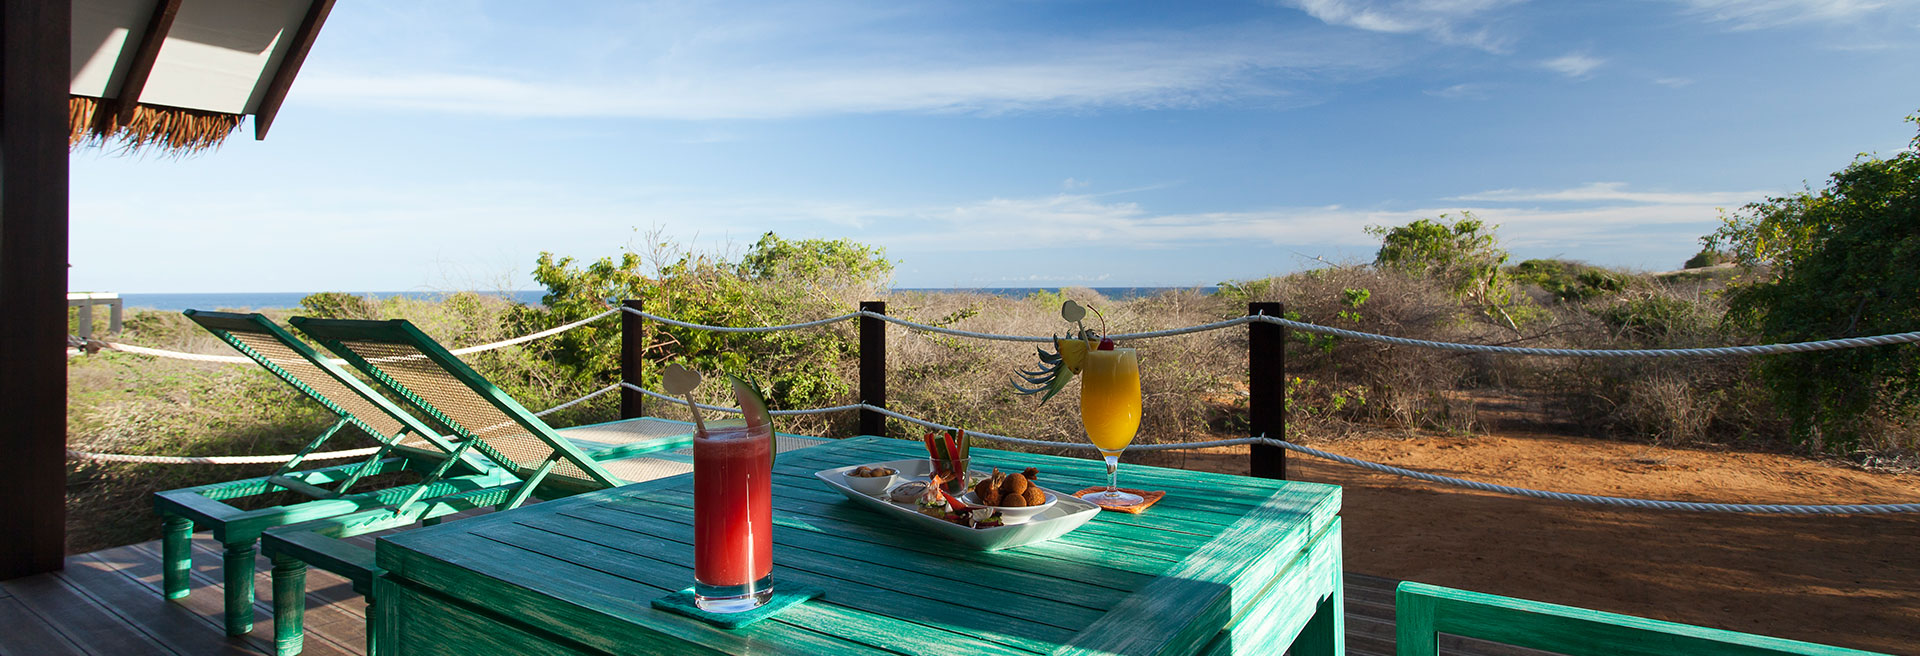 Fresh Juice and food layed out on the table with a view of the clear blue sky